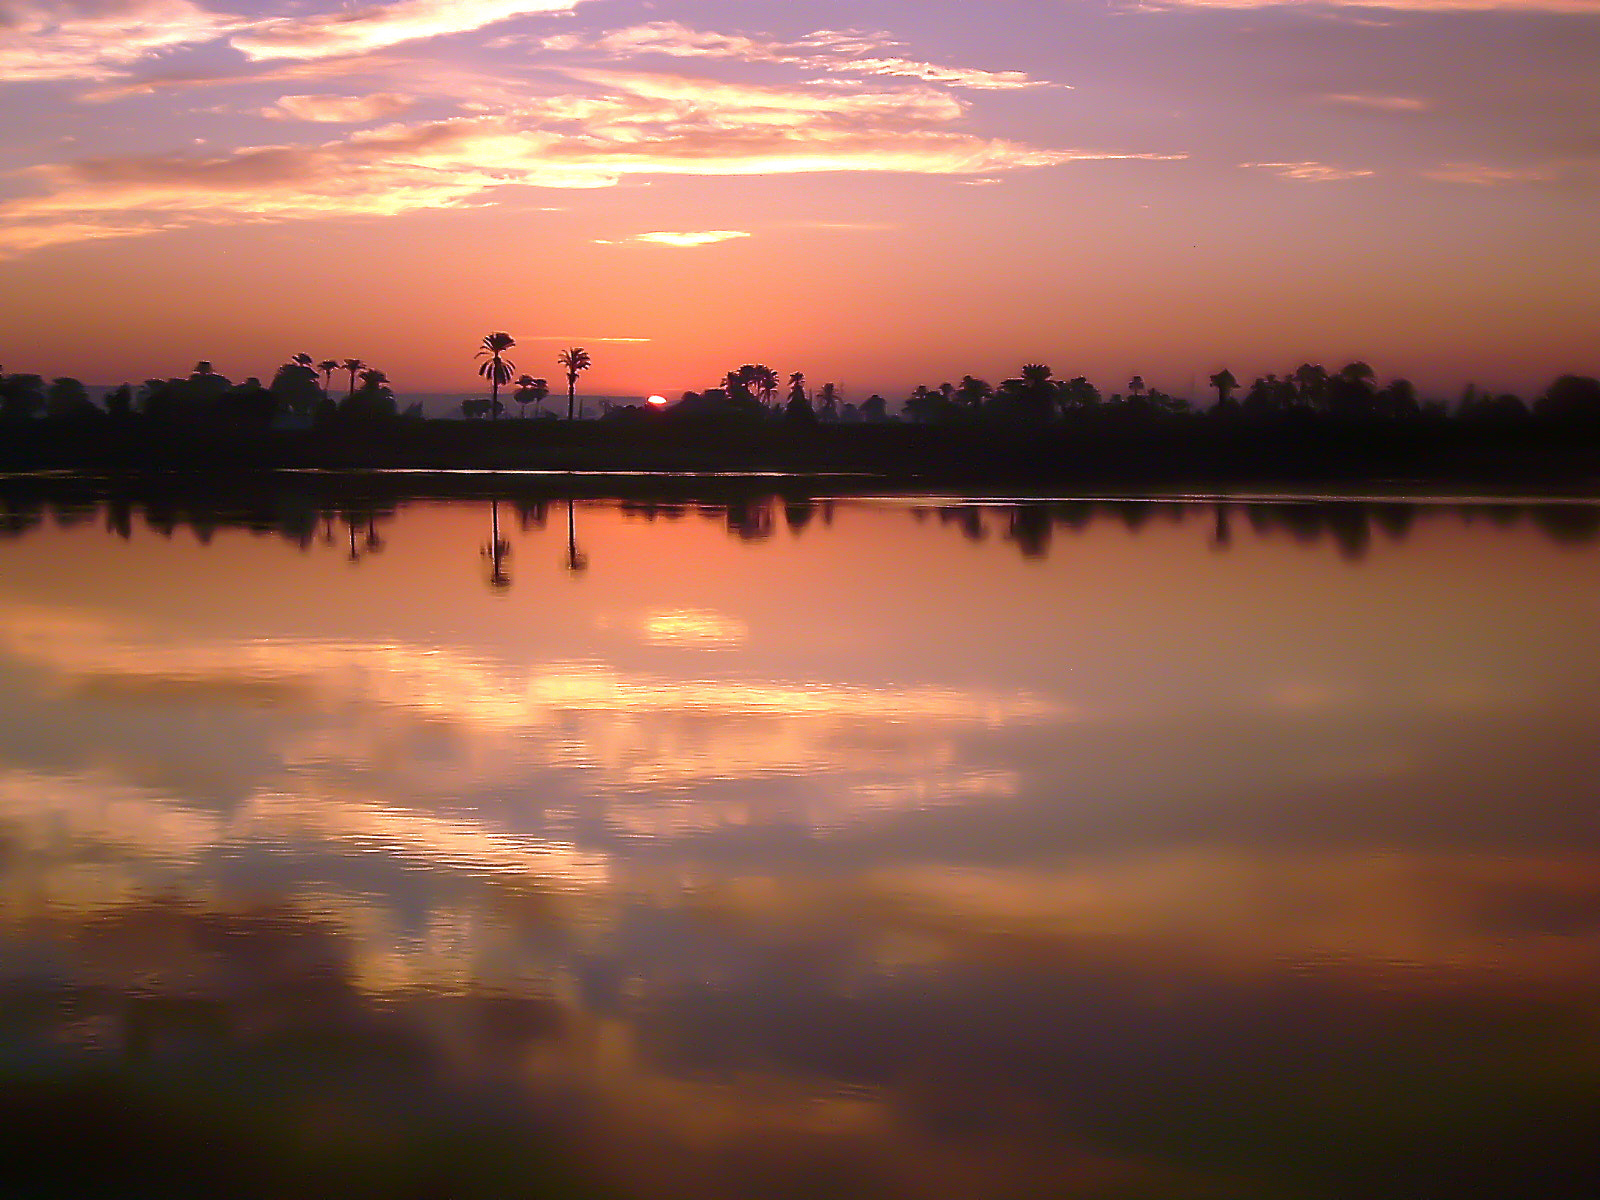 Photograph Sunset on the nile by Carlos Luque on 500px